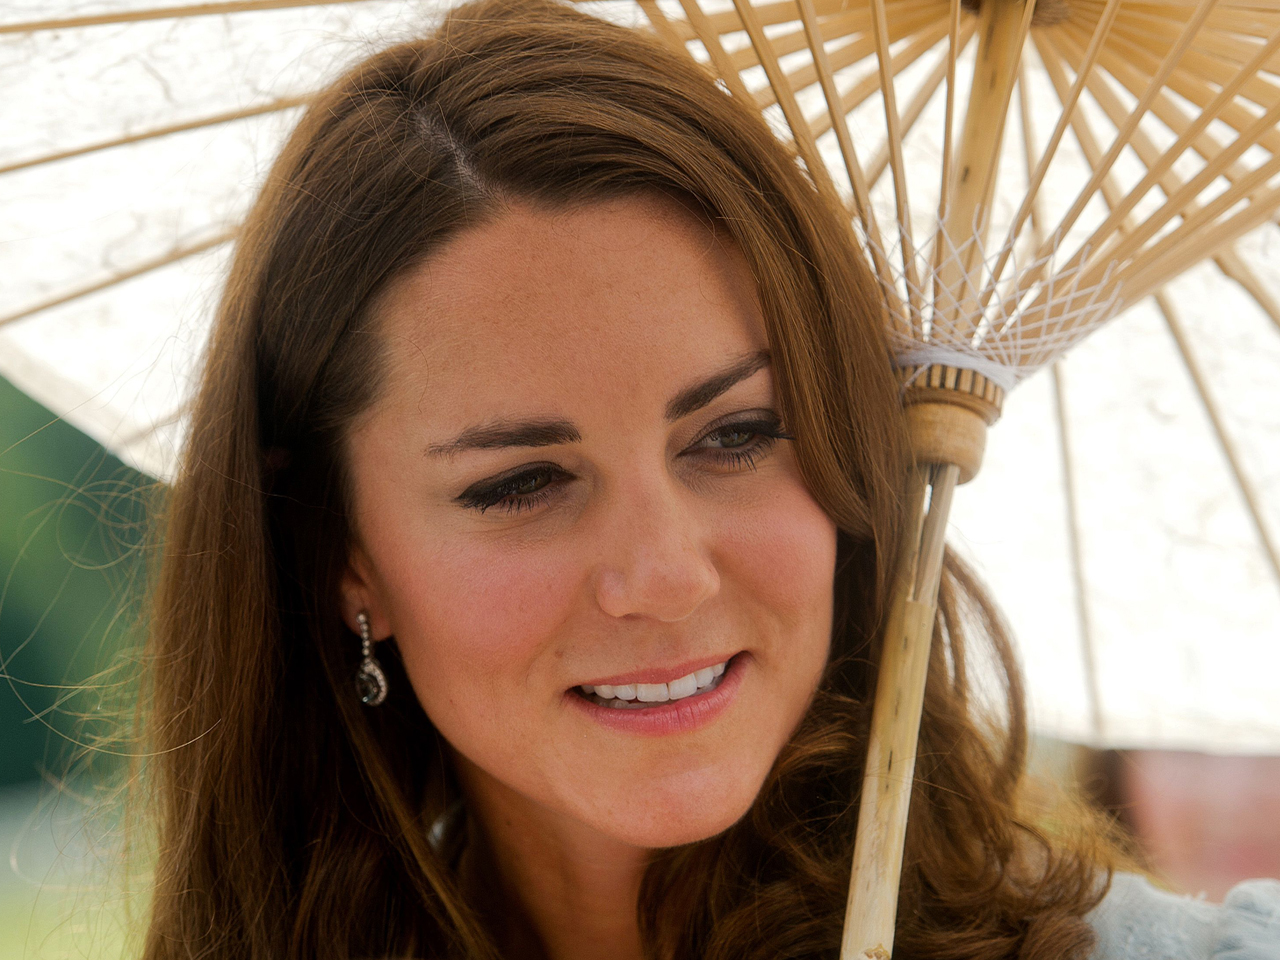 Duchess kate reportedly in hometown not hospital today com